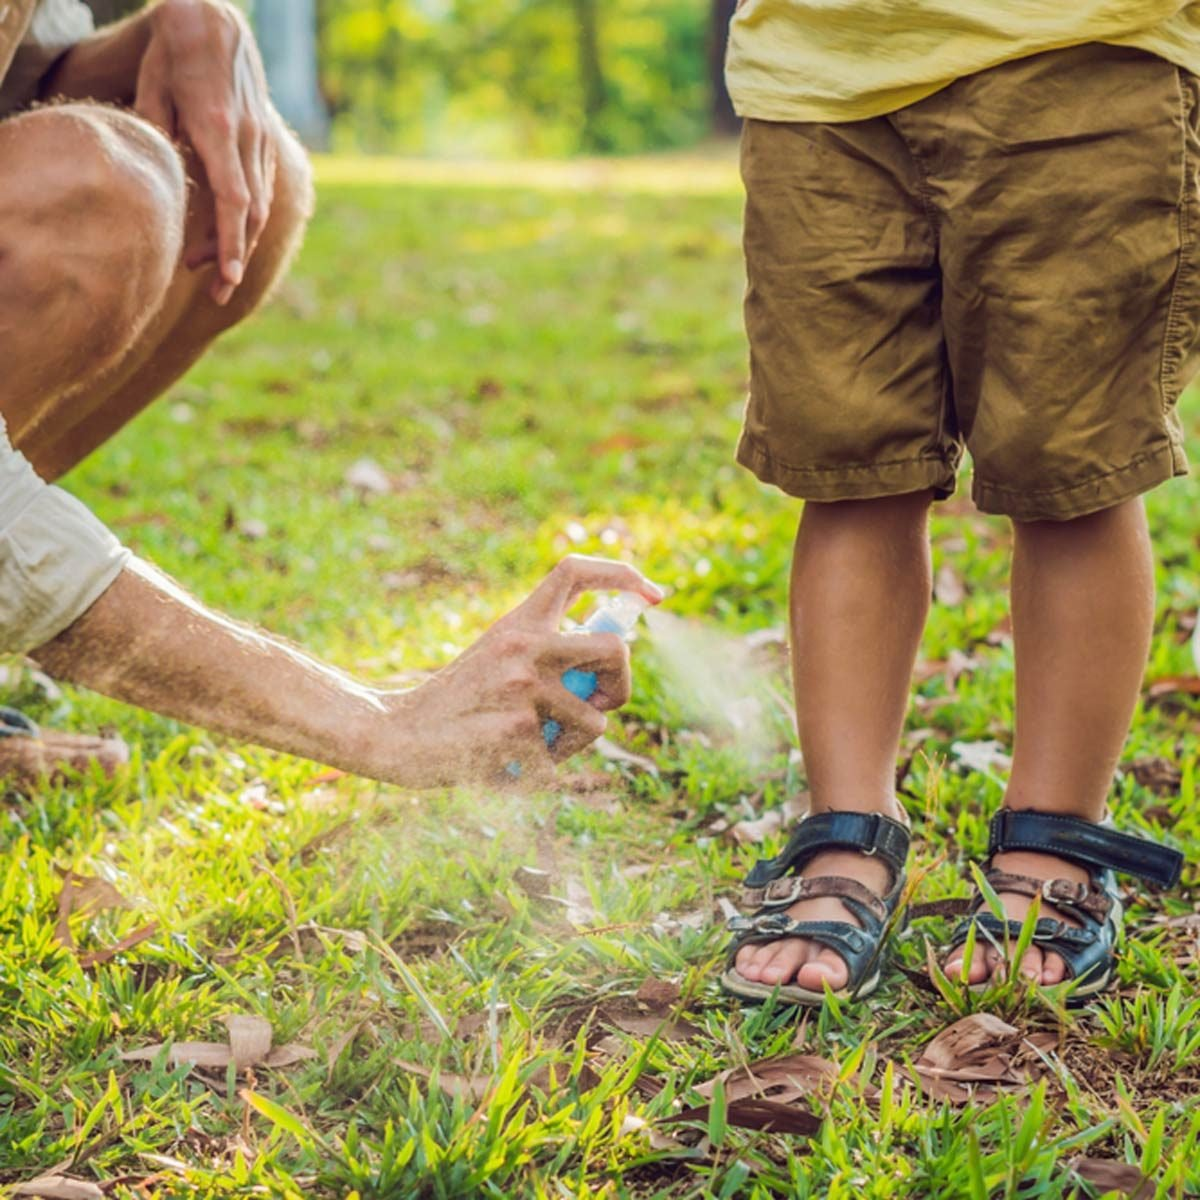 Common Myths About Personal Insect Repellents